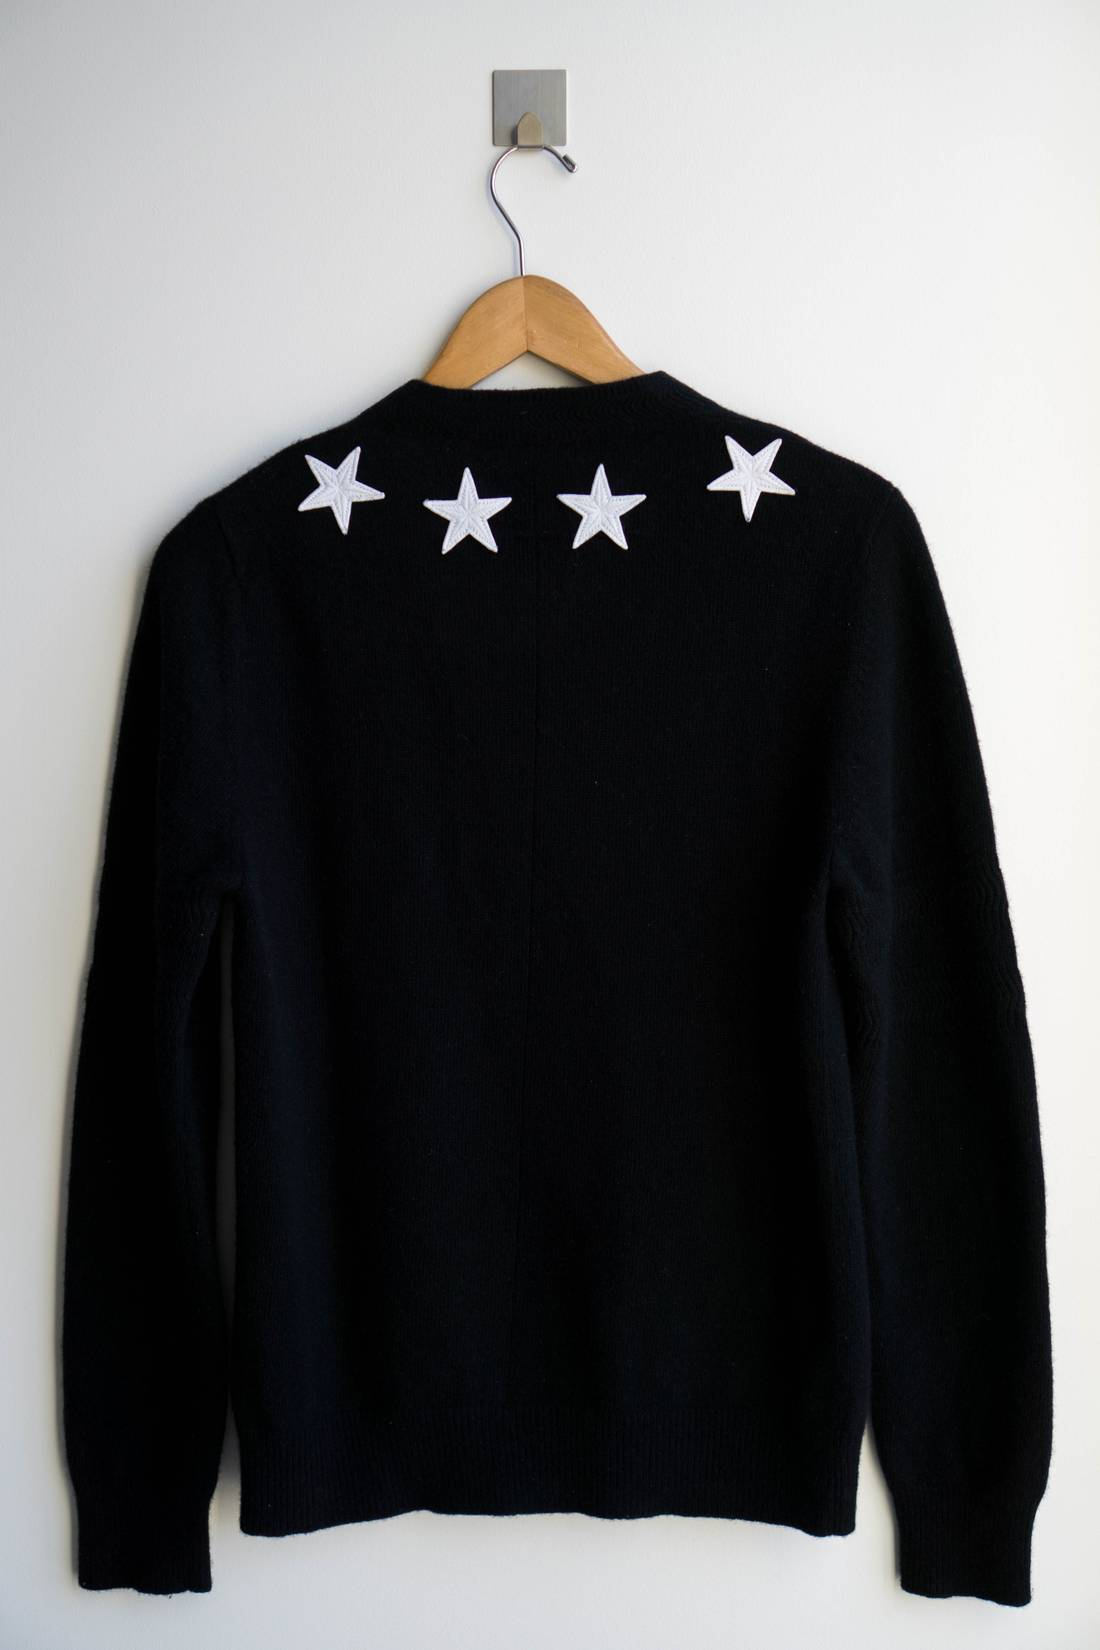 Black and White Stars Sweater Givenchy